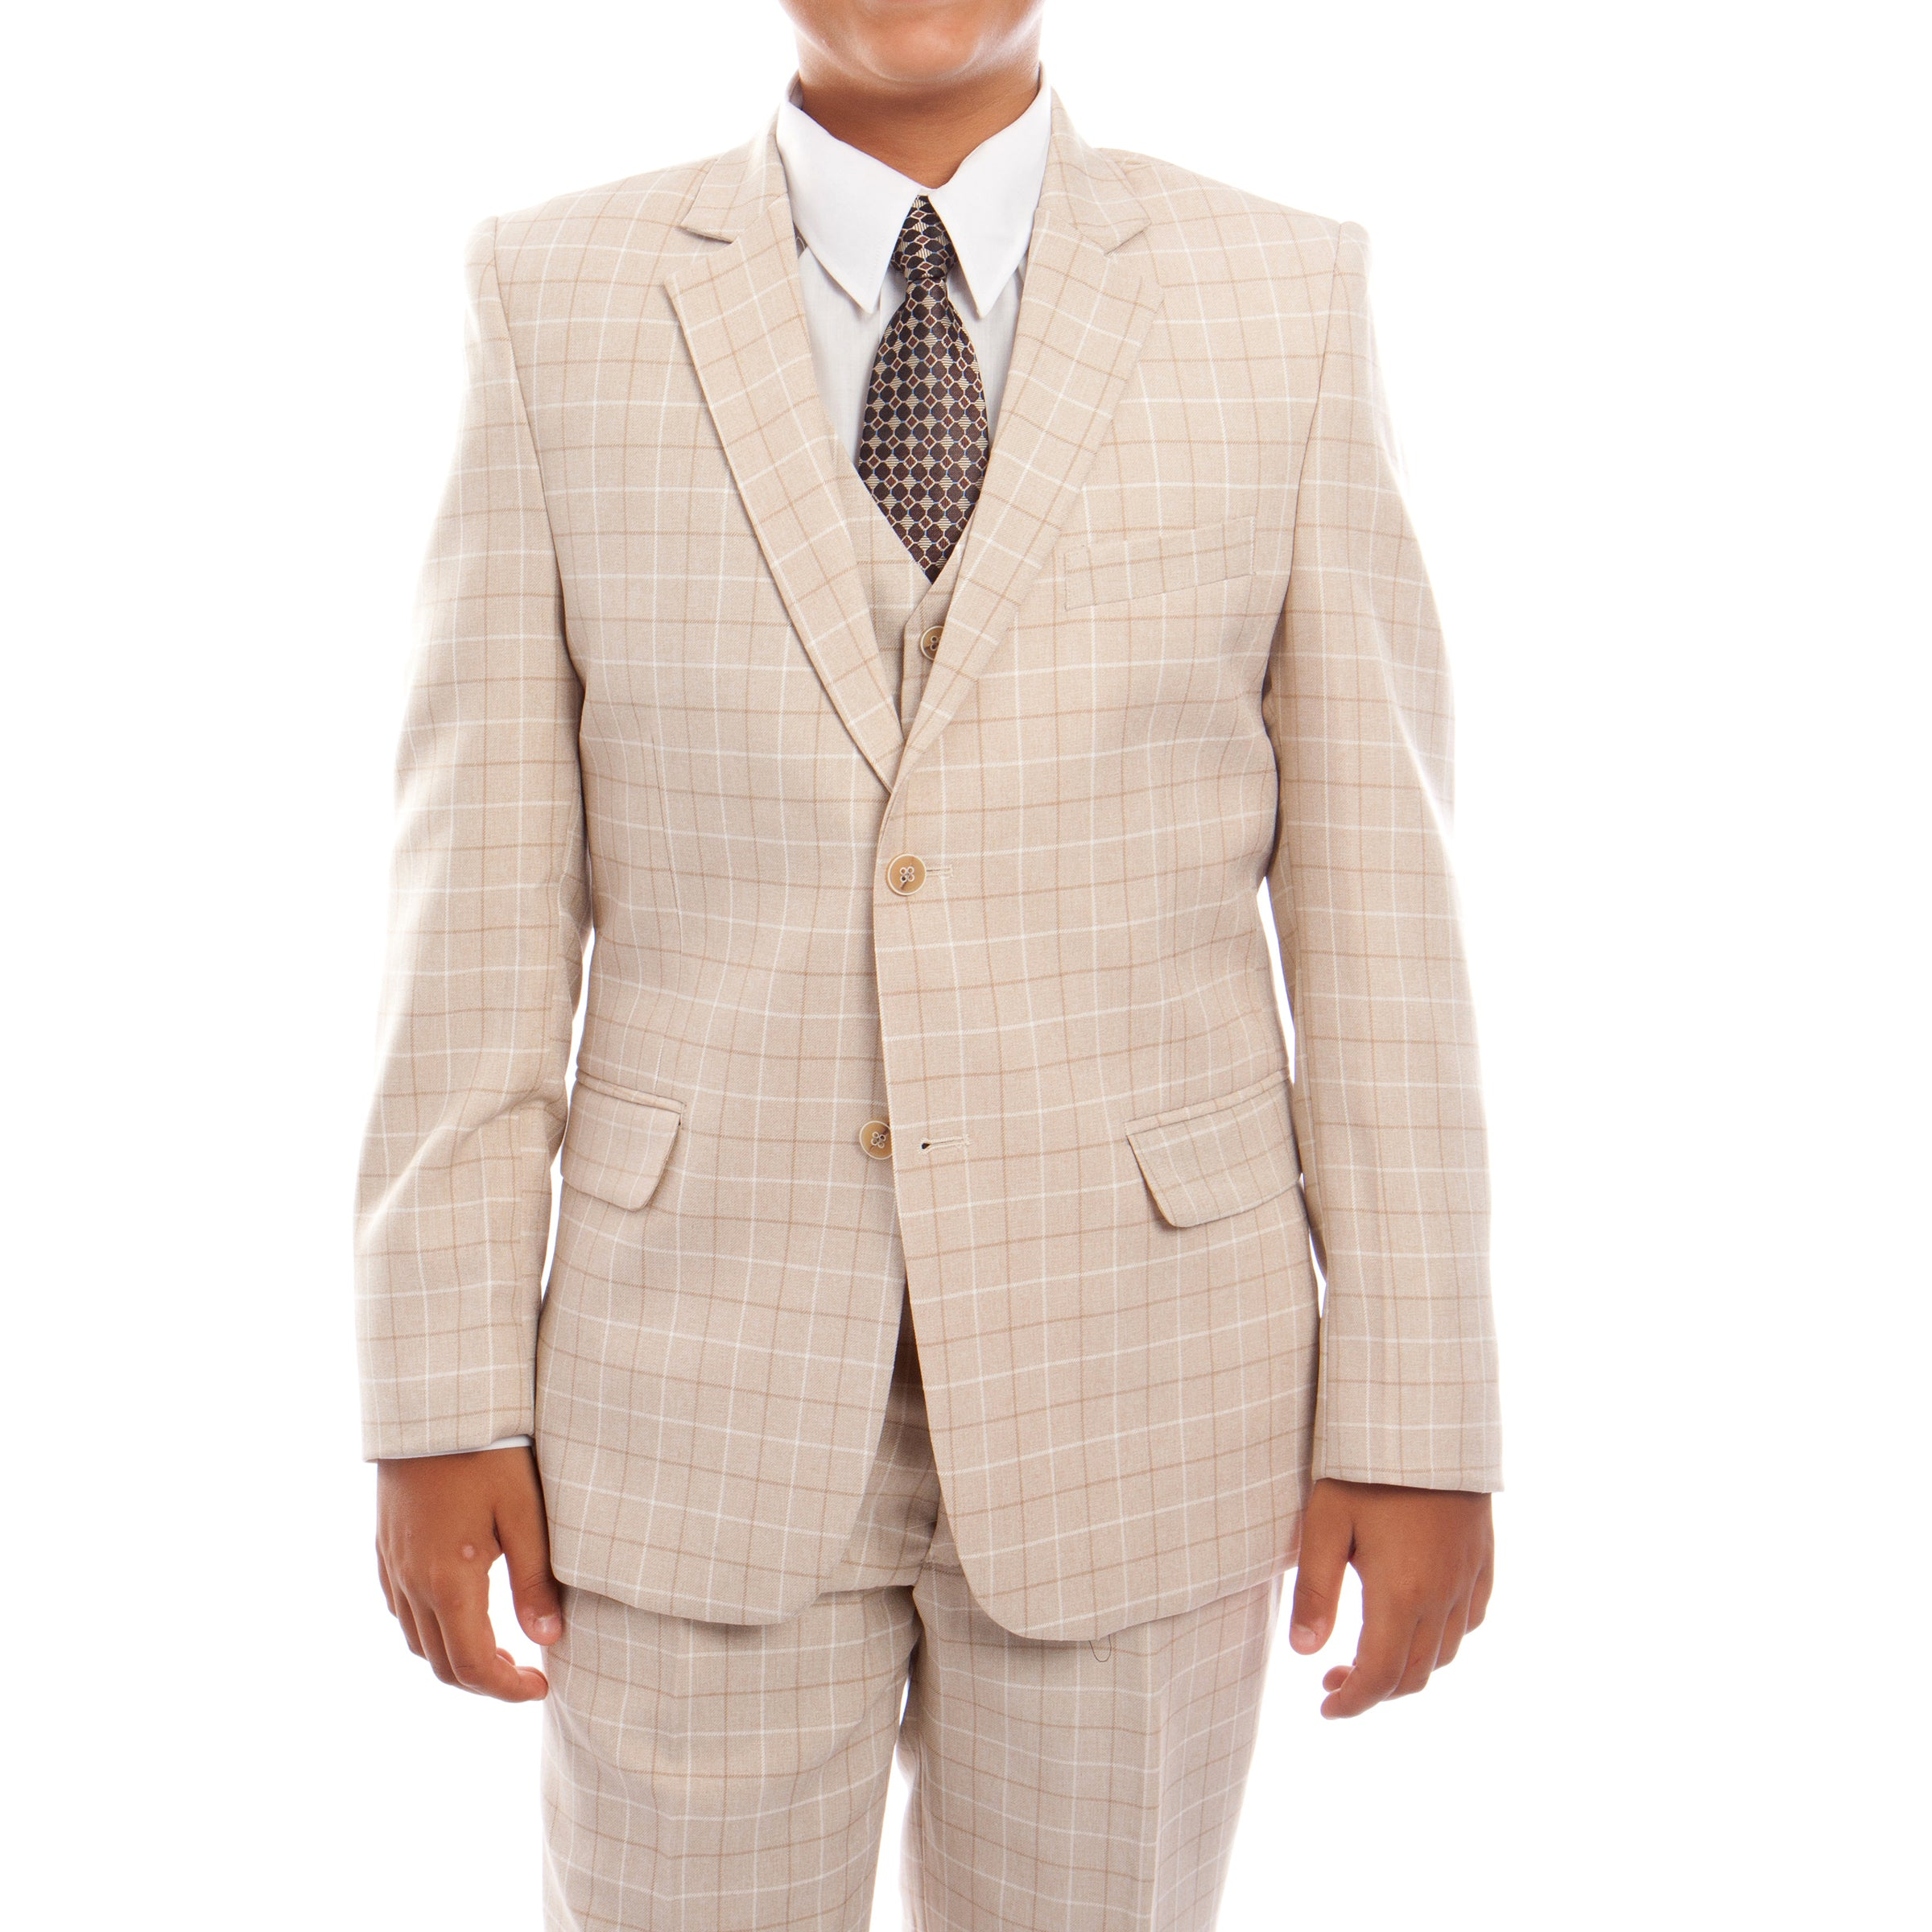 Tazio Beige Formal Suits For Boys